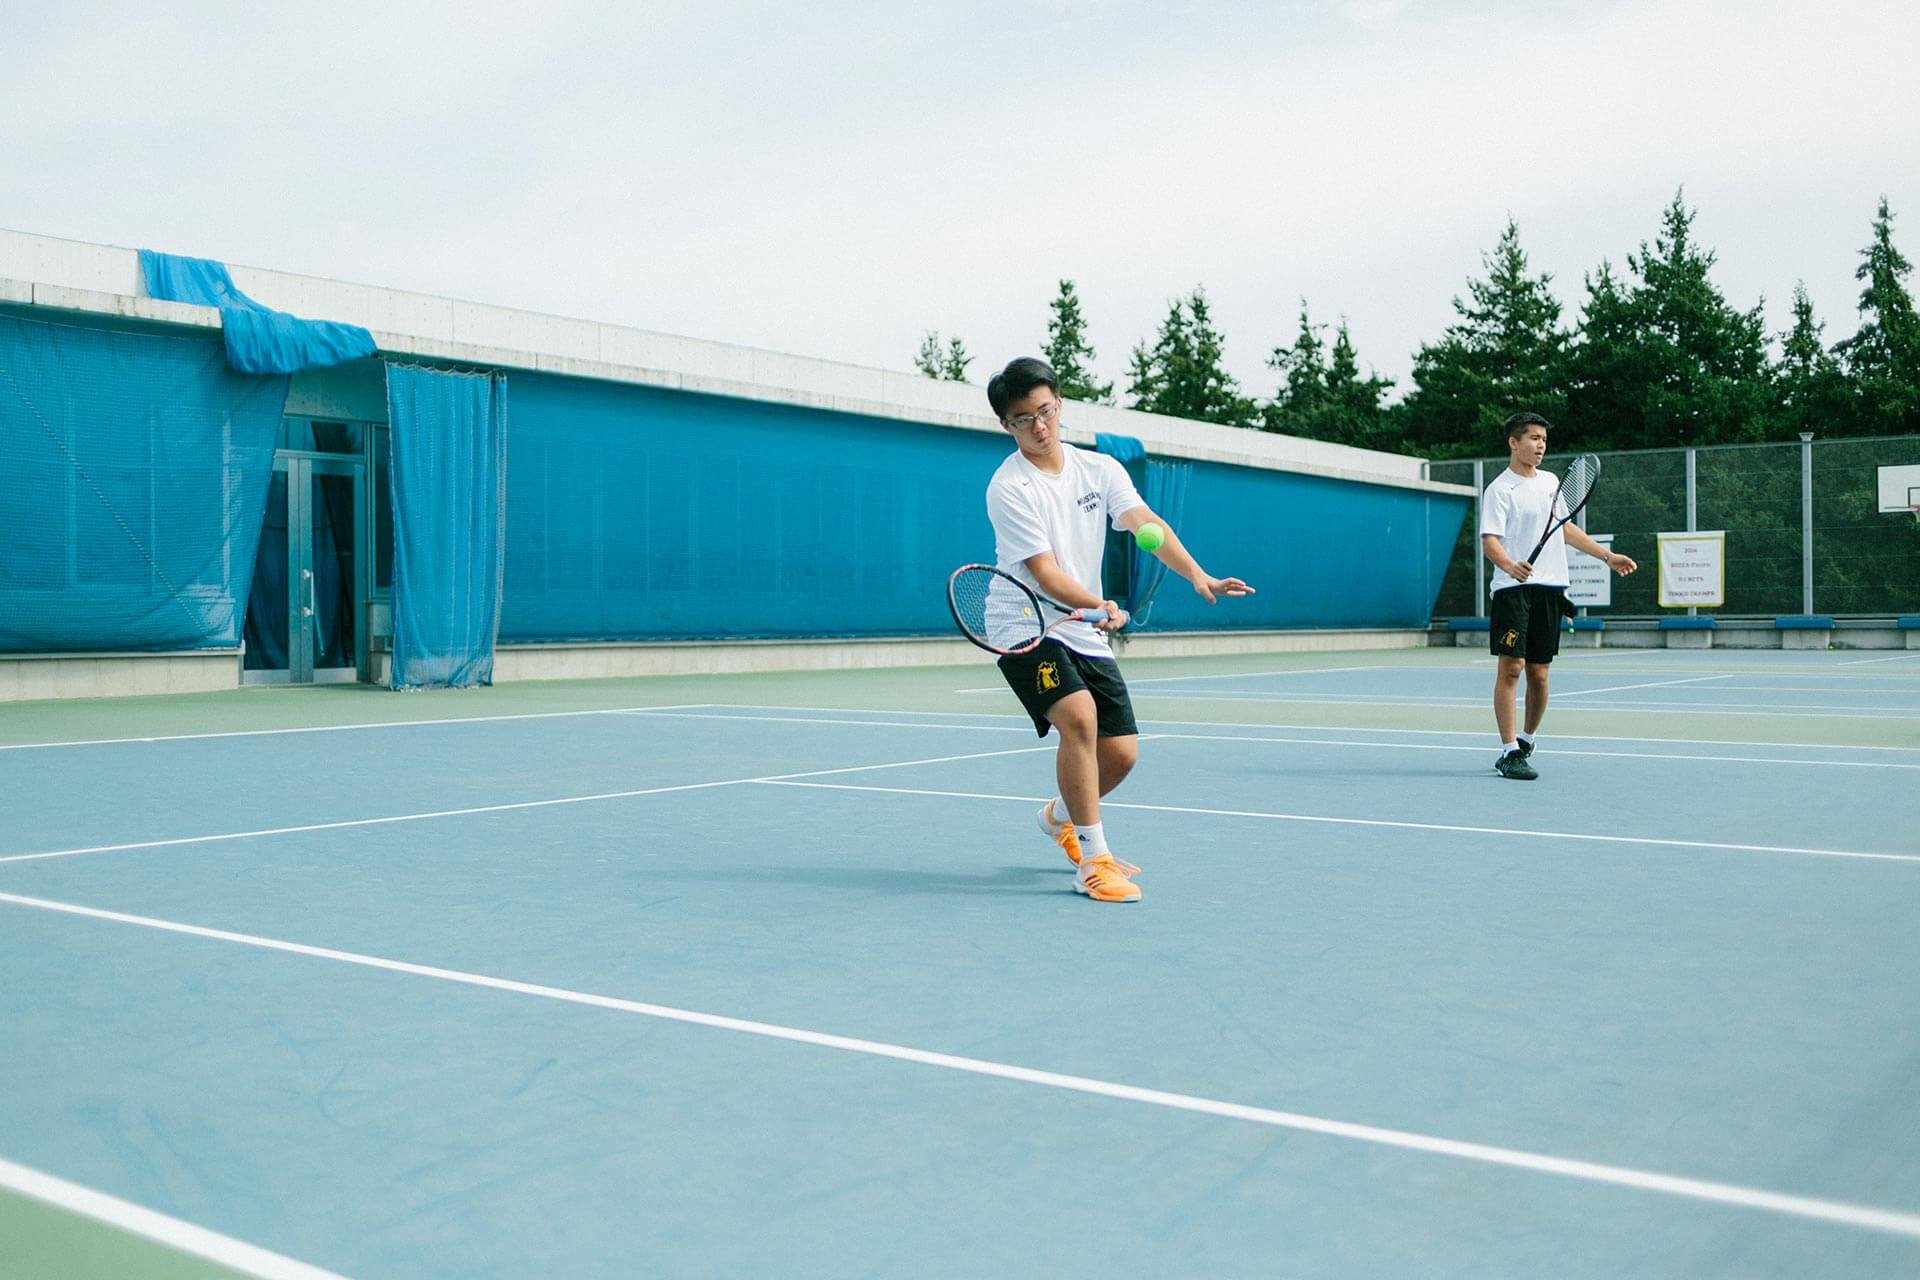 Students Play Tennis on the ASIJ Tennis Courts